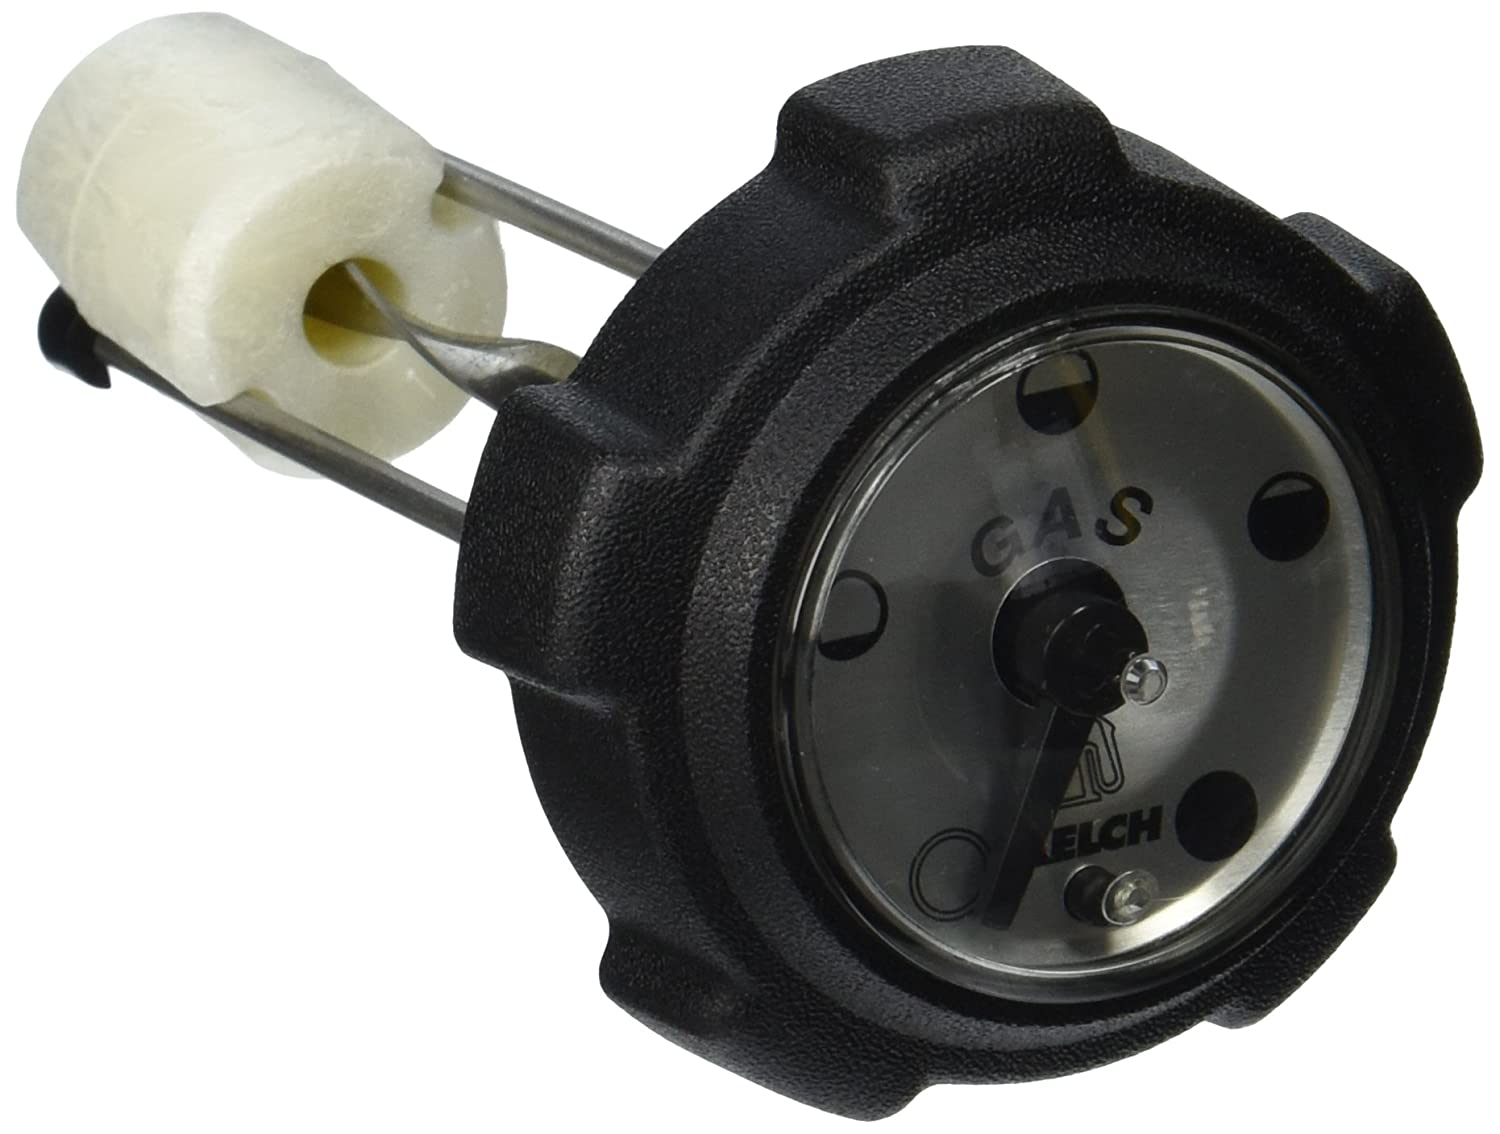 Stens 125-260 Fuel Cap Replaces With Gauge Murray 024064MA 24064 Cub Cadet 109037-C2 109037-C1 Murray 024064 24064MA